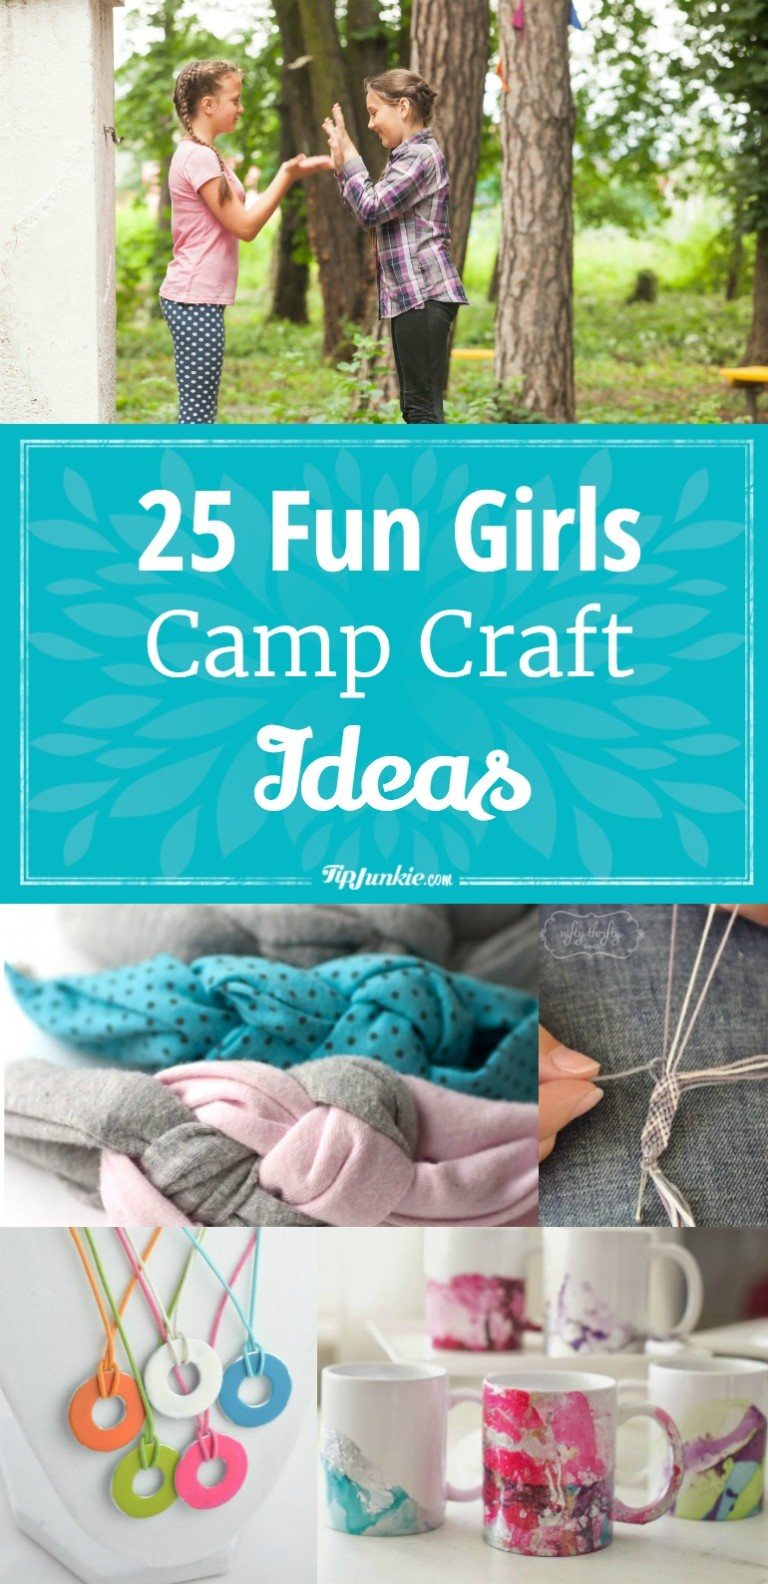 25 Fun Girls Camp Craft Ideas Tip Junkie